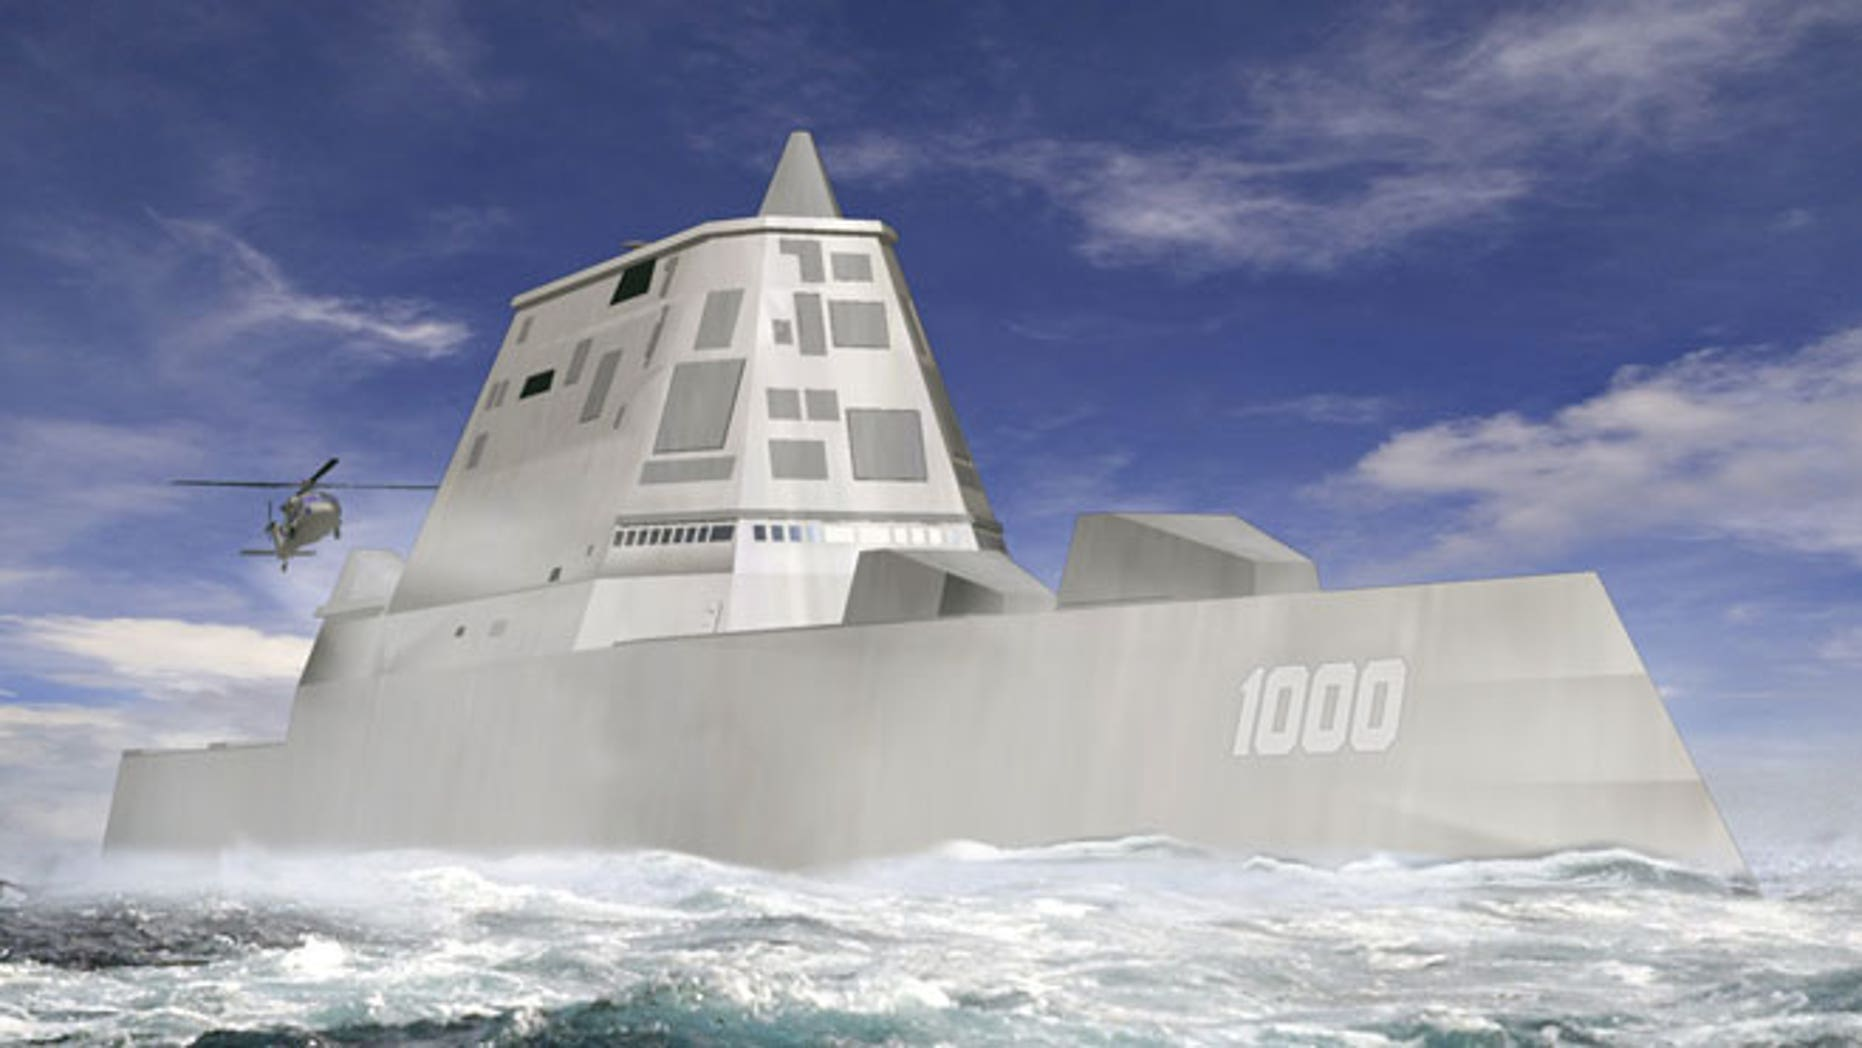 This file image released by Bath Iron Works shows a rendering of the DDG-1000 Zumwalt, the U.S. Navy's next-generation destroyer, which has been funded to be built at Bath Iron Works in Maine and at Northrop Grumman's shipyard in Pascagoula, Miss.